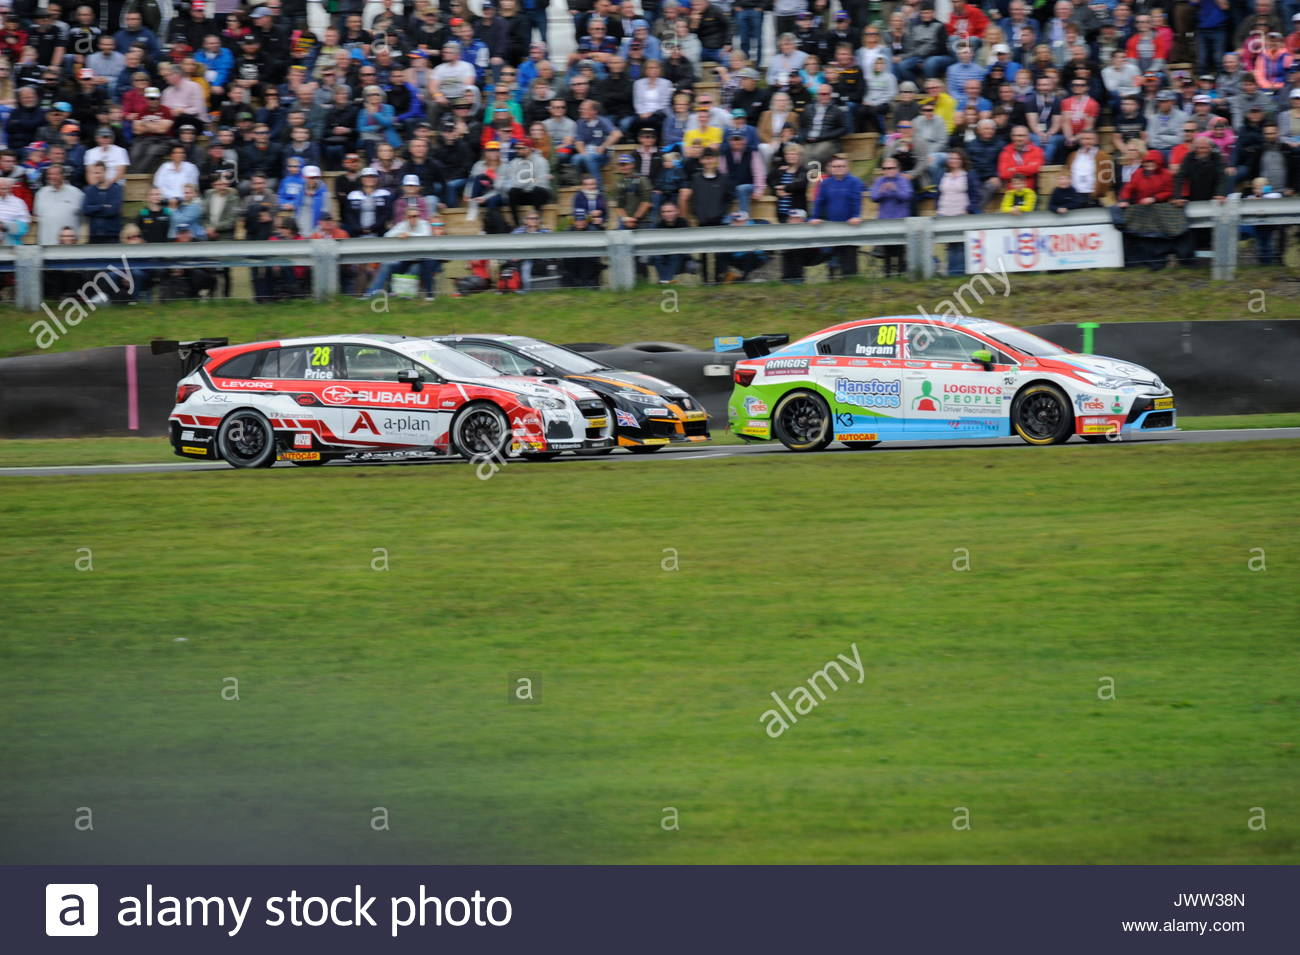 Dunfermline, UK. 13th Aug, 2017. Exiting the Hairpin during race two of the Dunlop MSA British Touring Car Championship seventh round at Knockhill Race Circuit. Credit: Roger Gaisford/Alamy Live News - Stock Image